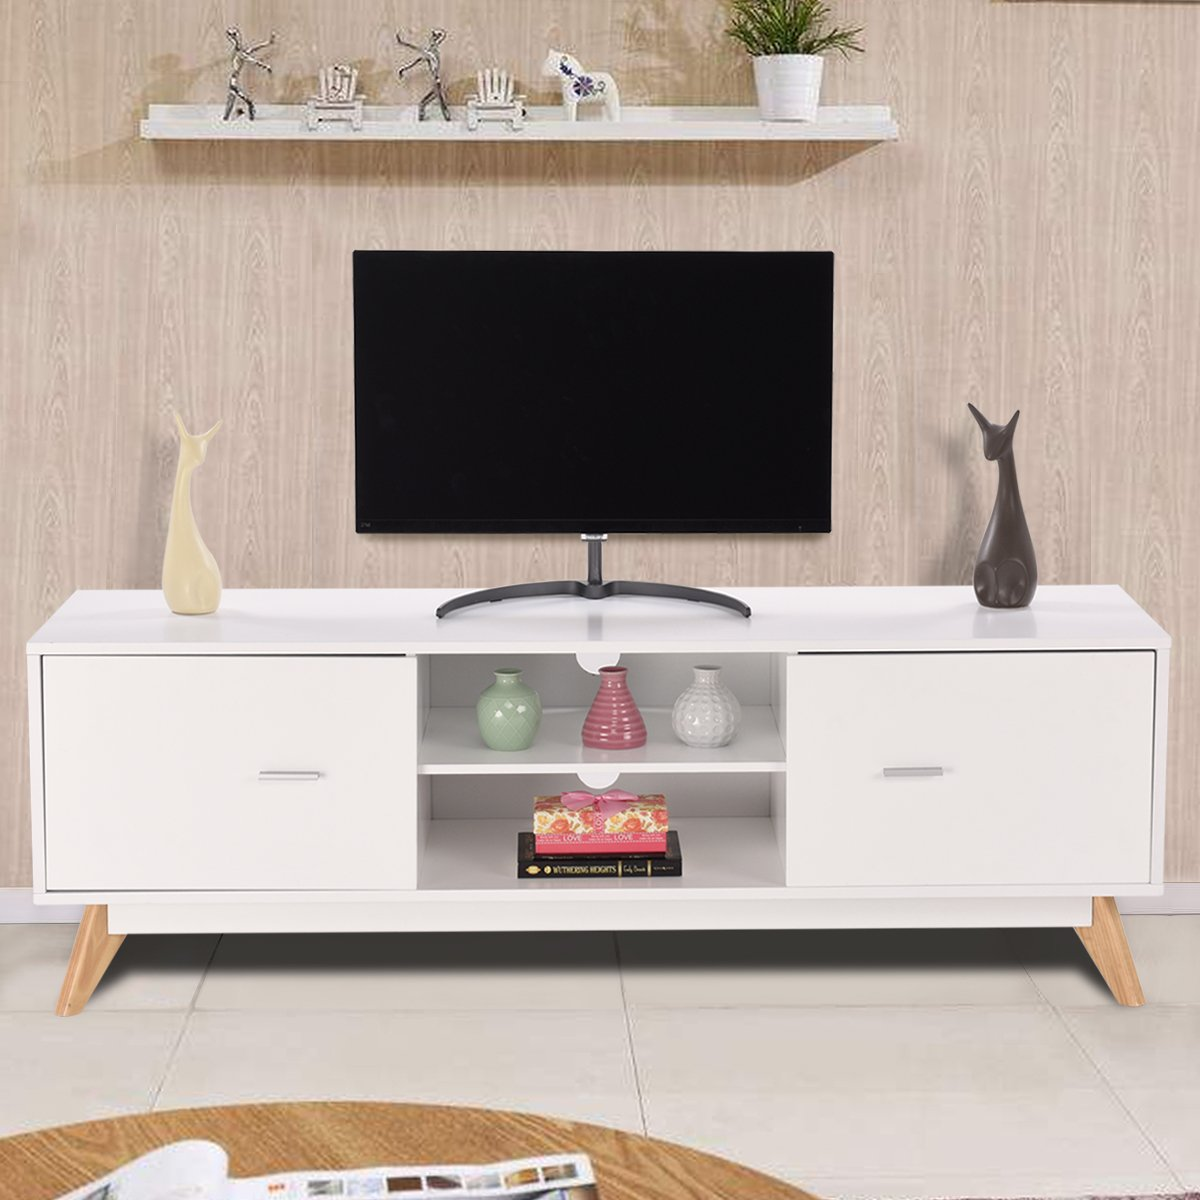 Tangkula Modern TV Stand Wood Storage Console Entertainment Center w/2 Doors and Shelves White Finish